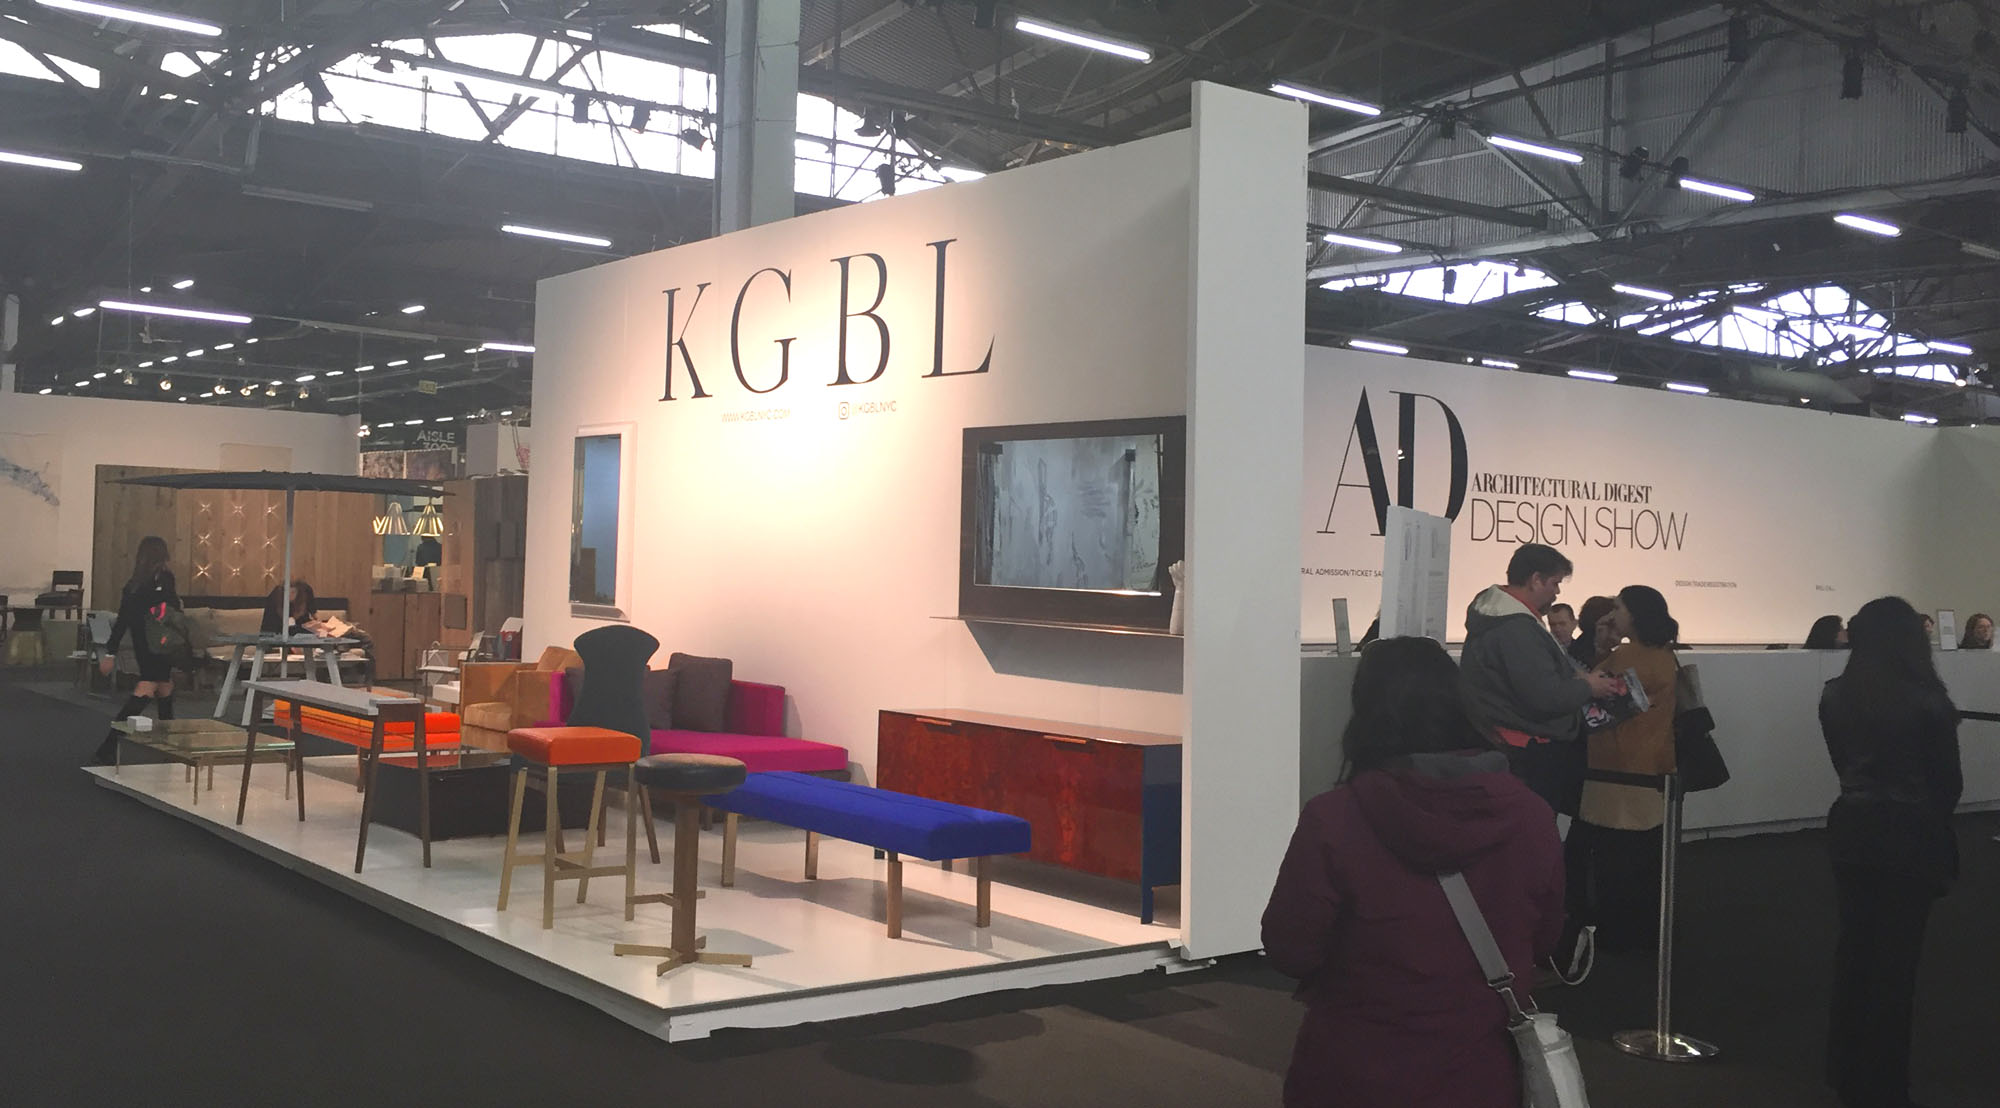 KGBL Booth